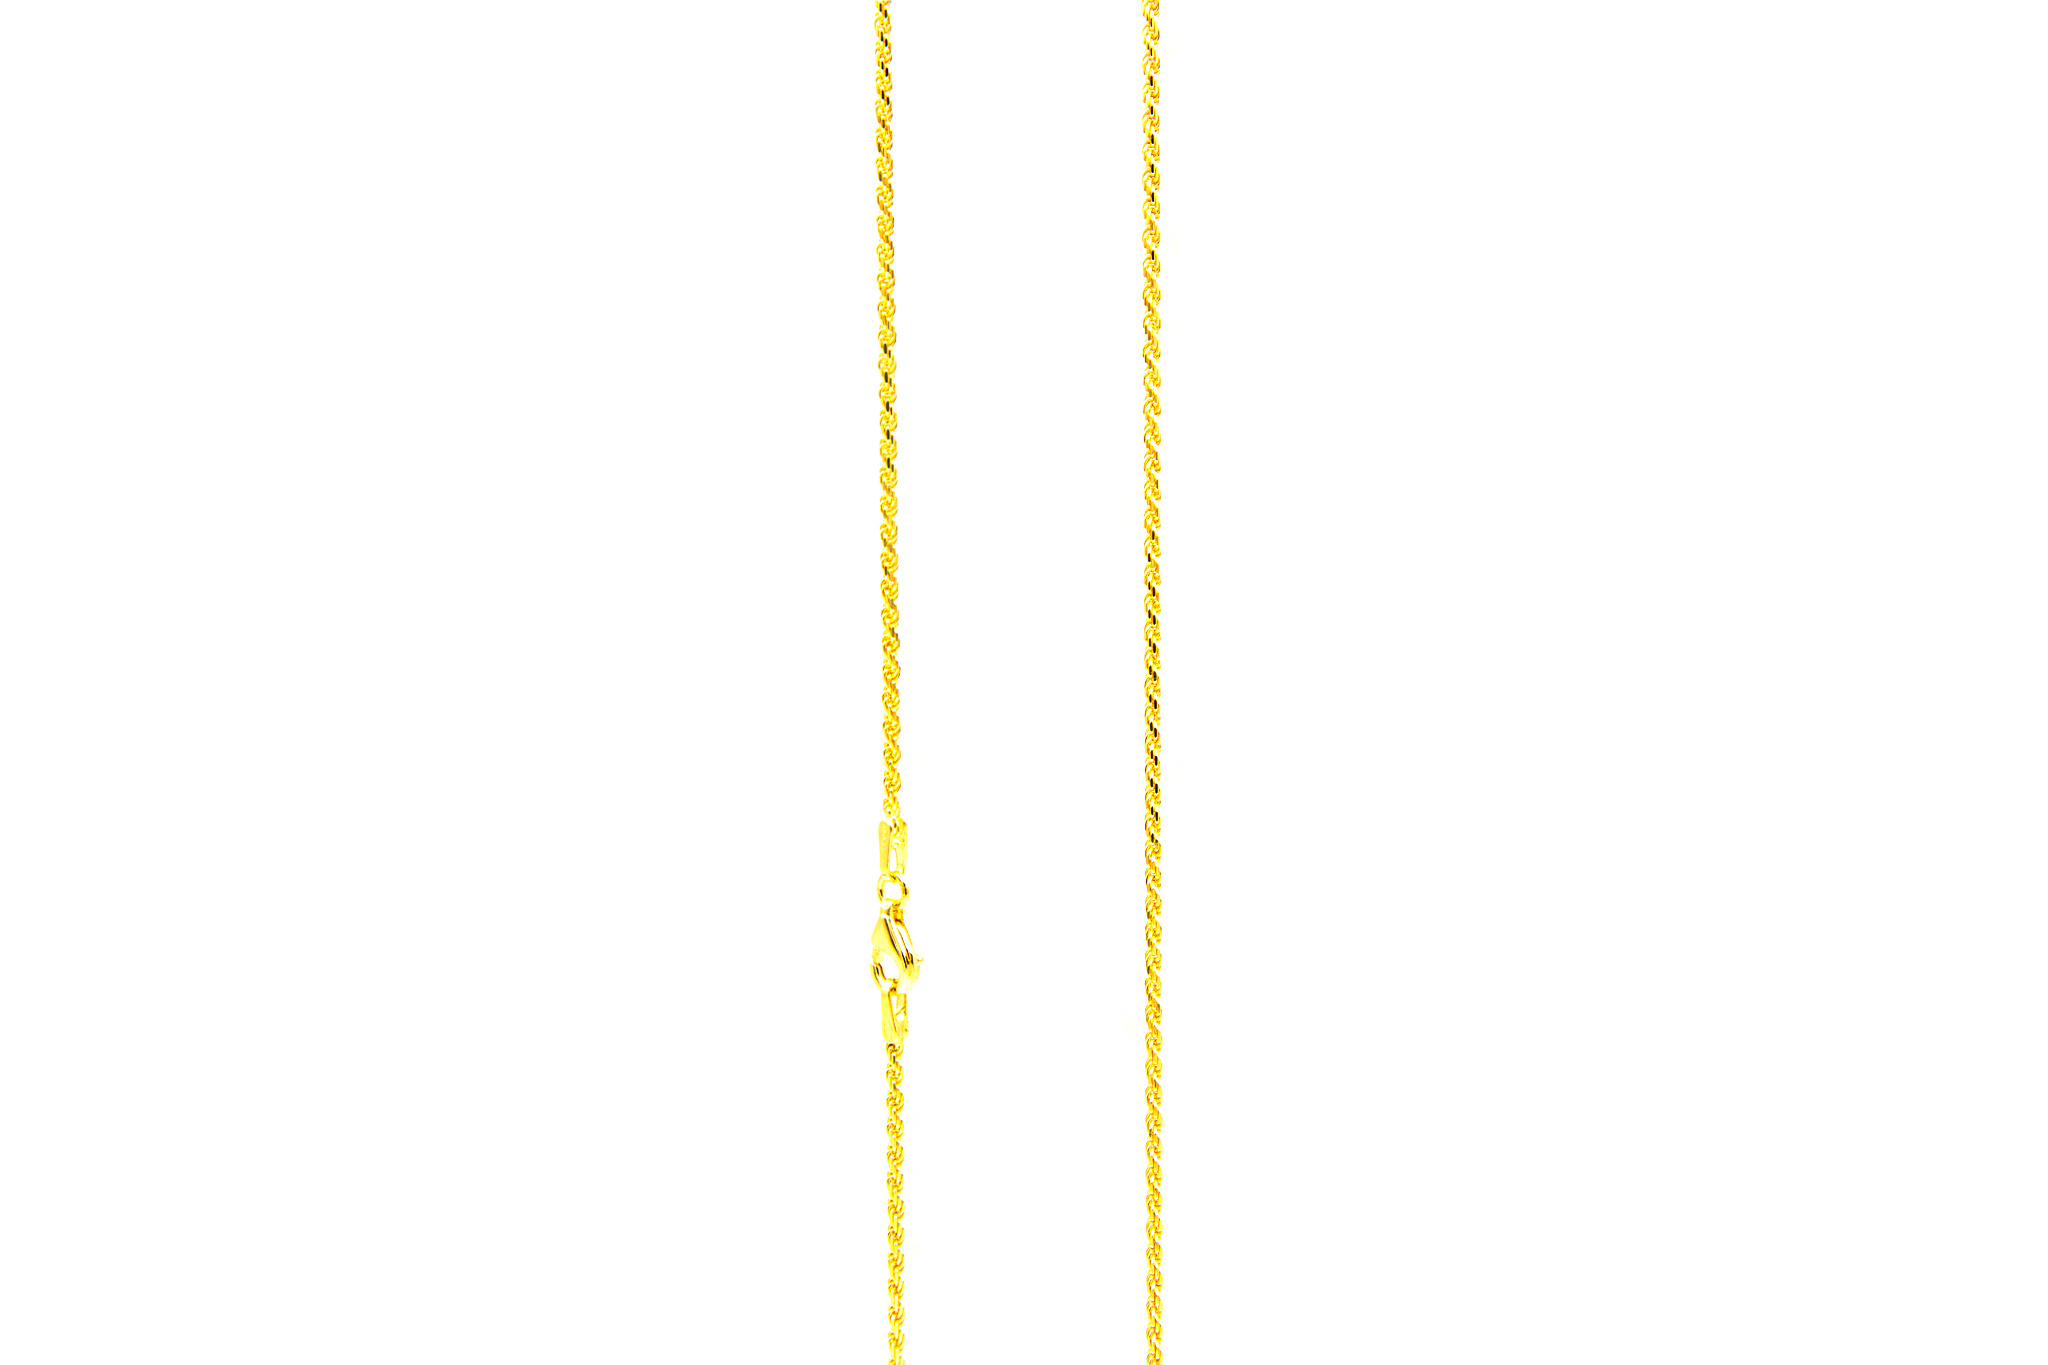 Rope chain cubic massief goud 18k 2mm-1